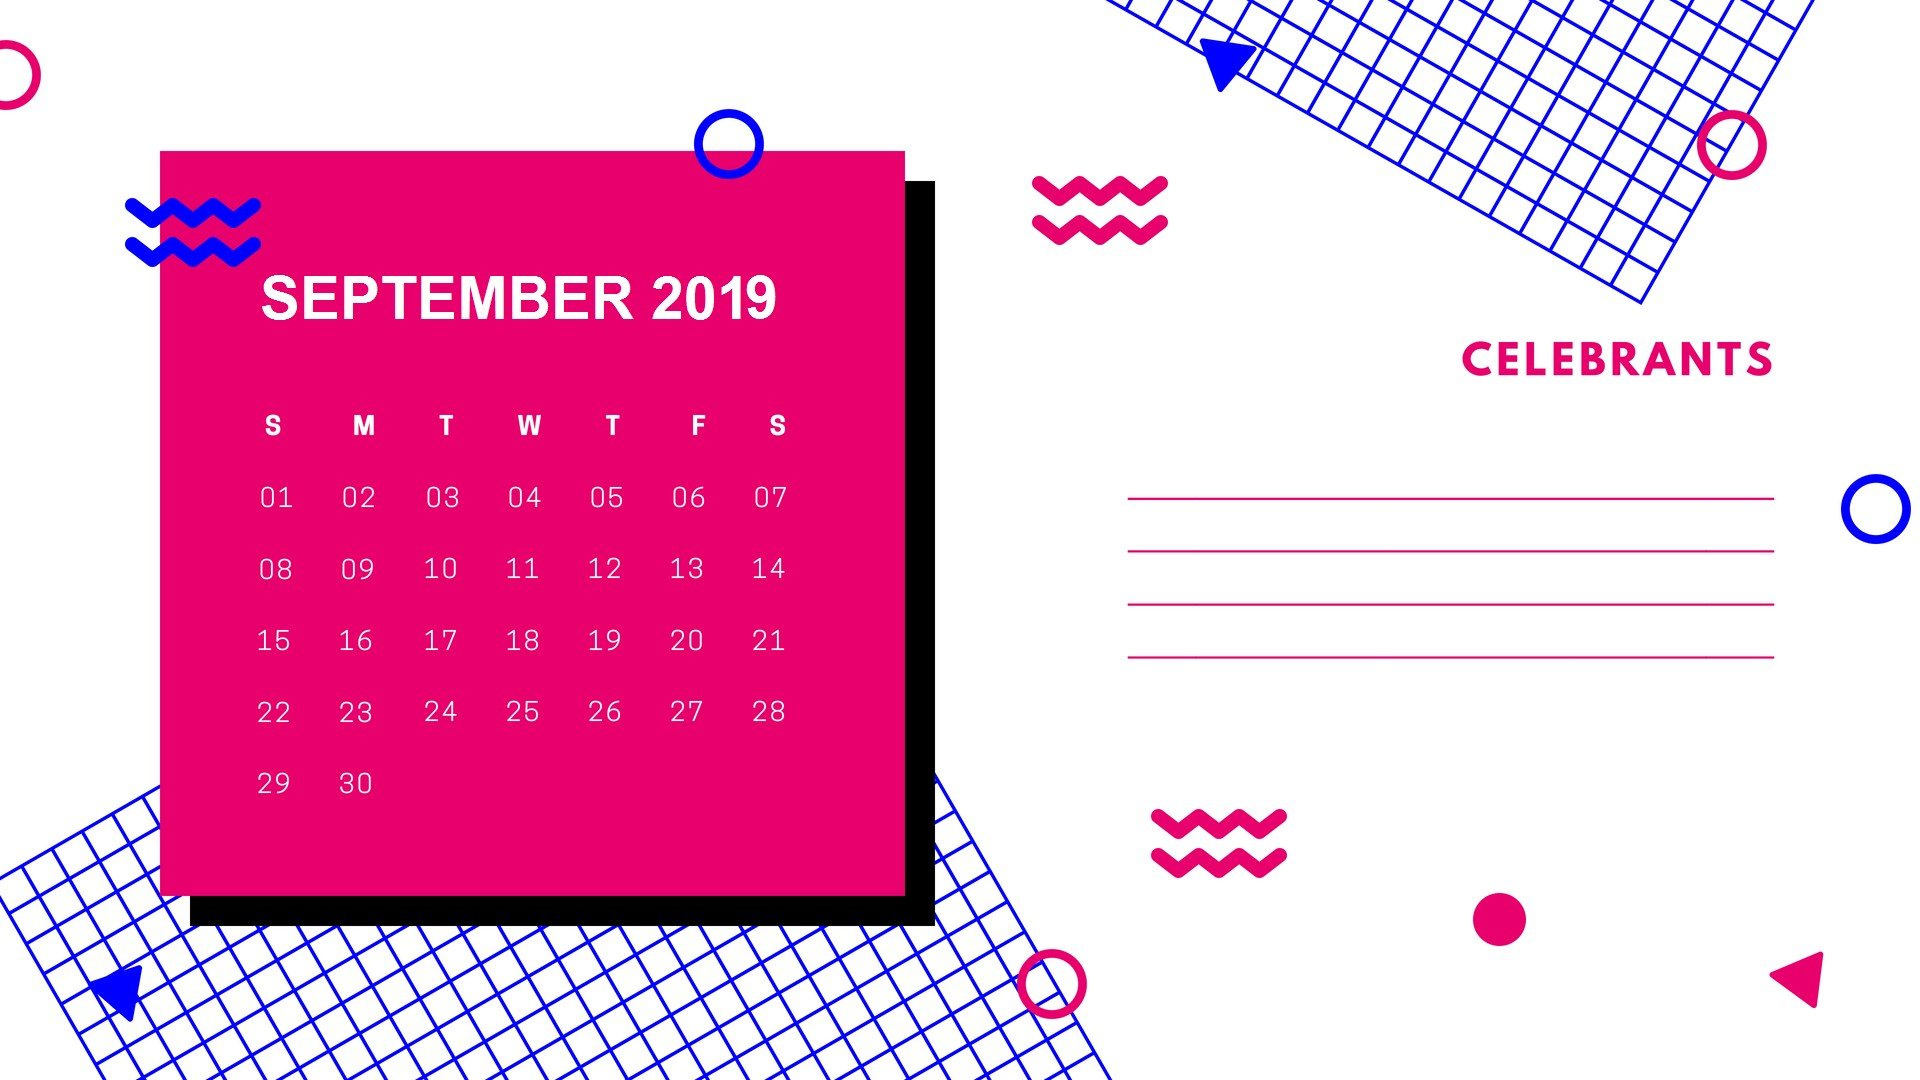 Calendario 2019 Week Más Recientes Stylish 2019 September Calendar 2019calendar Printablecalendar Of Calendario 2019 Week Más Recientes Editable Calendar 2019 Pdf Printable 2018 Monthly Calendars